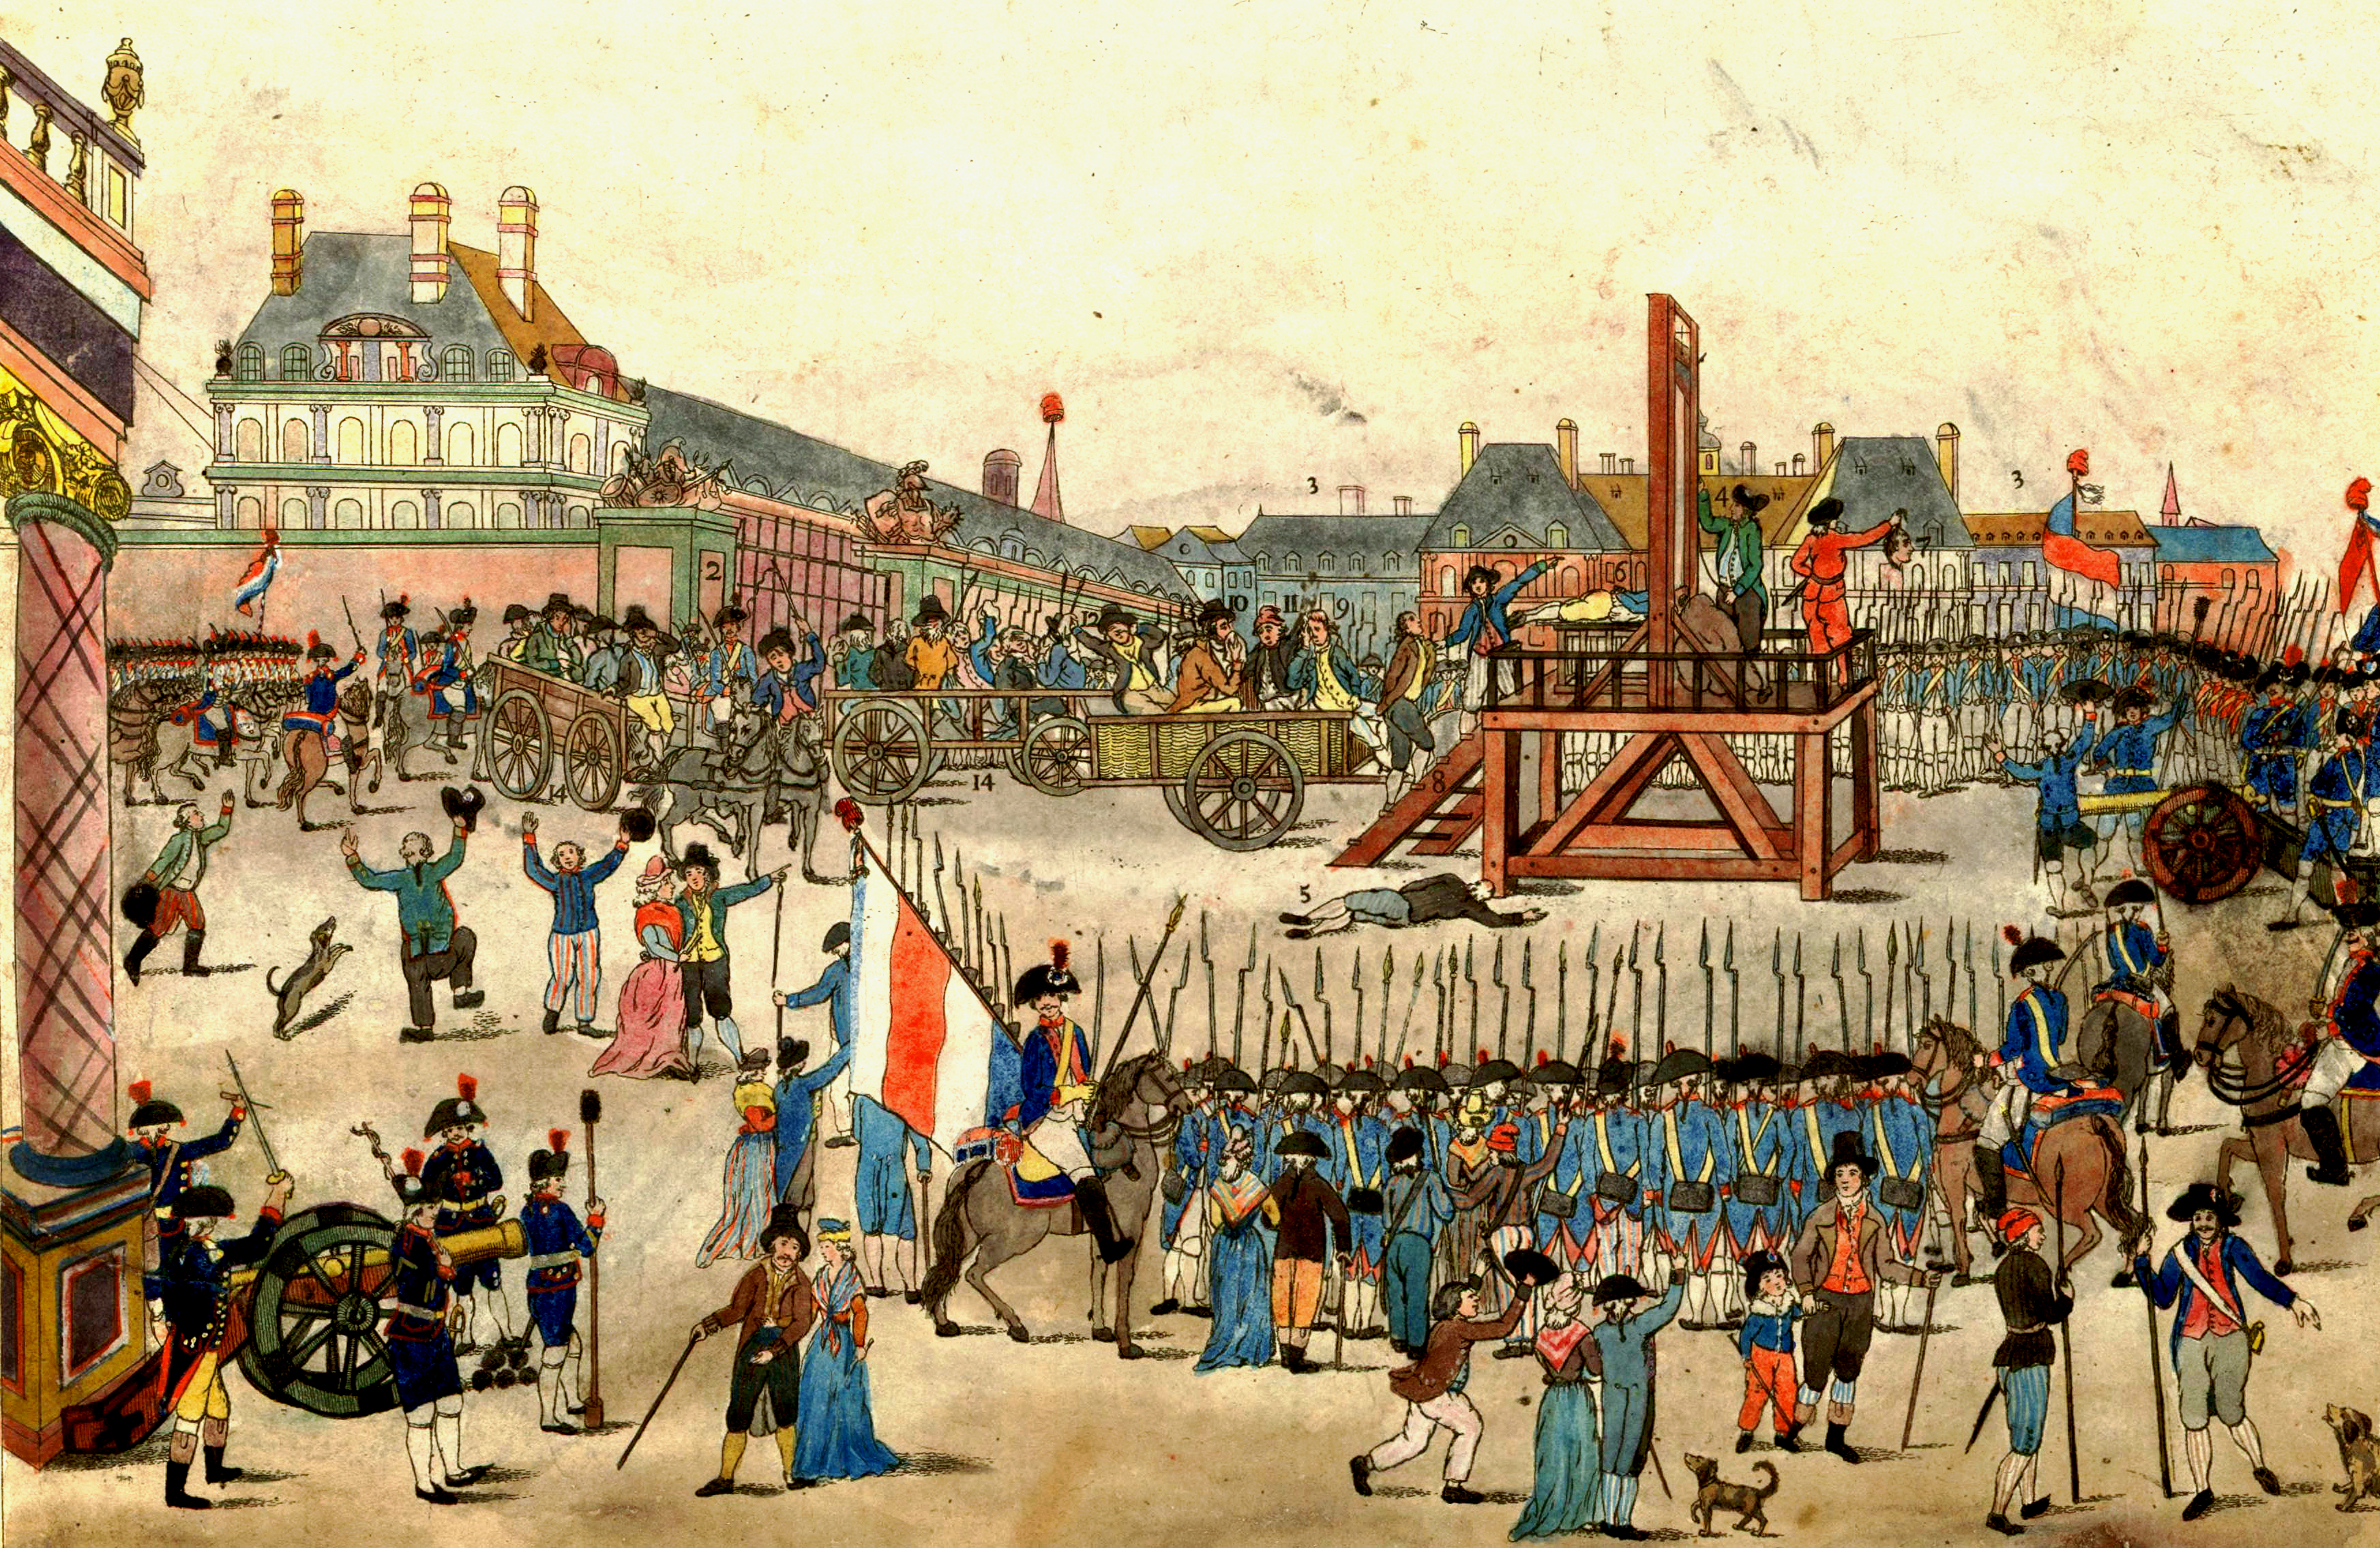 The French Revolution: Execution of King Louis XVI. Photo courtesy of https://jspivey.wikispaces.com/Parlement+YK